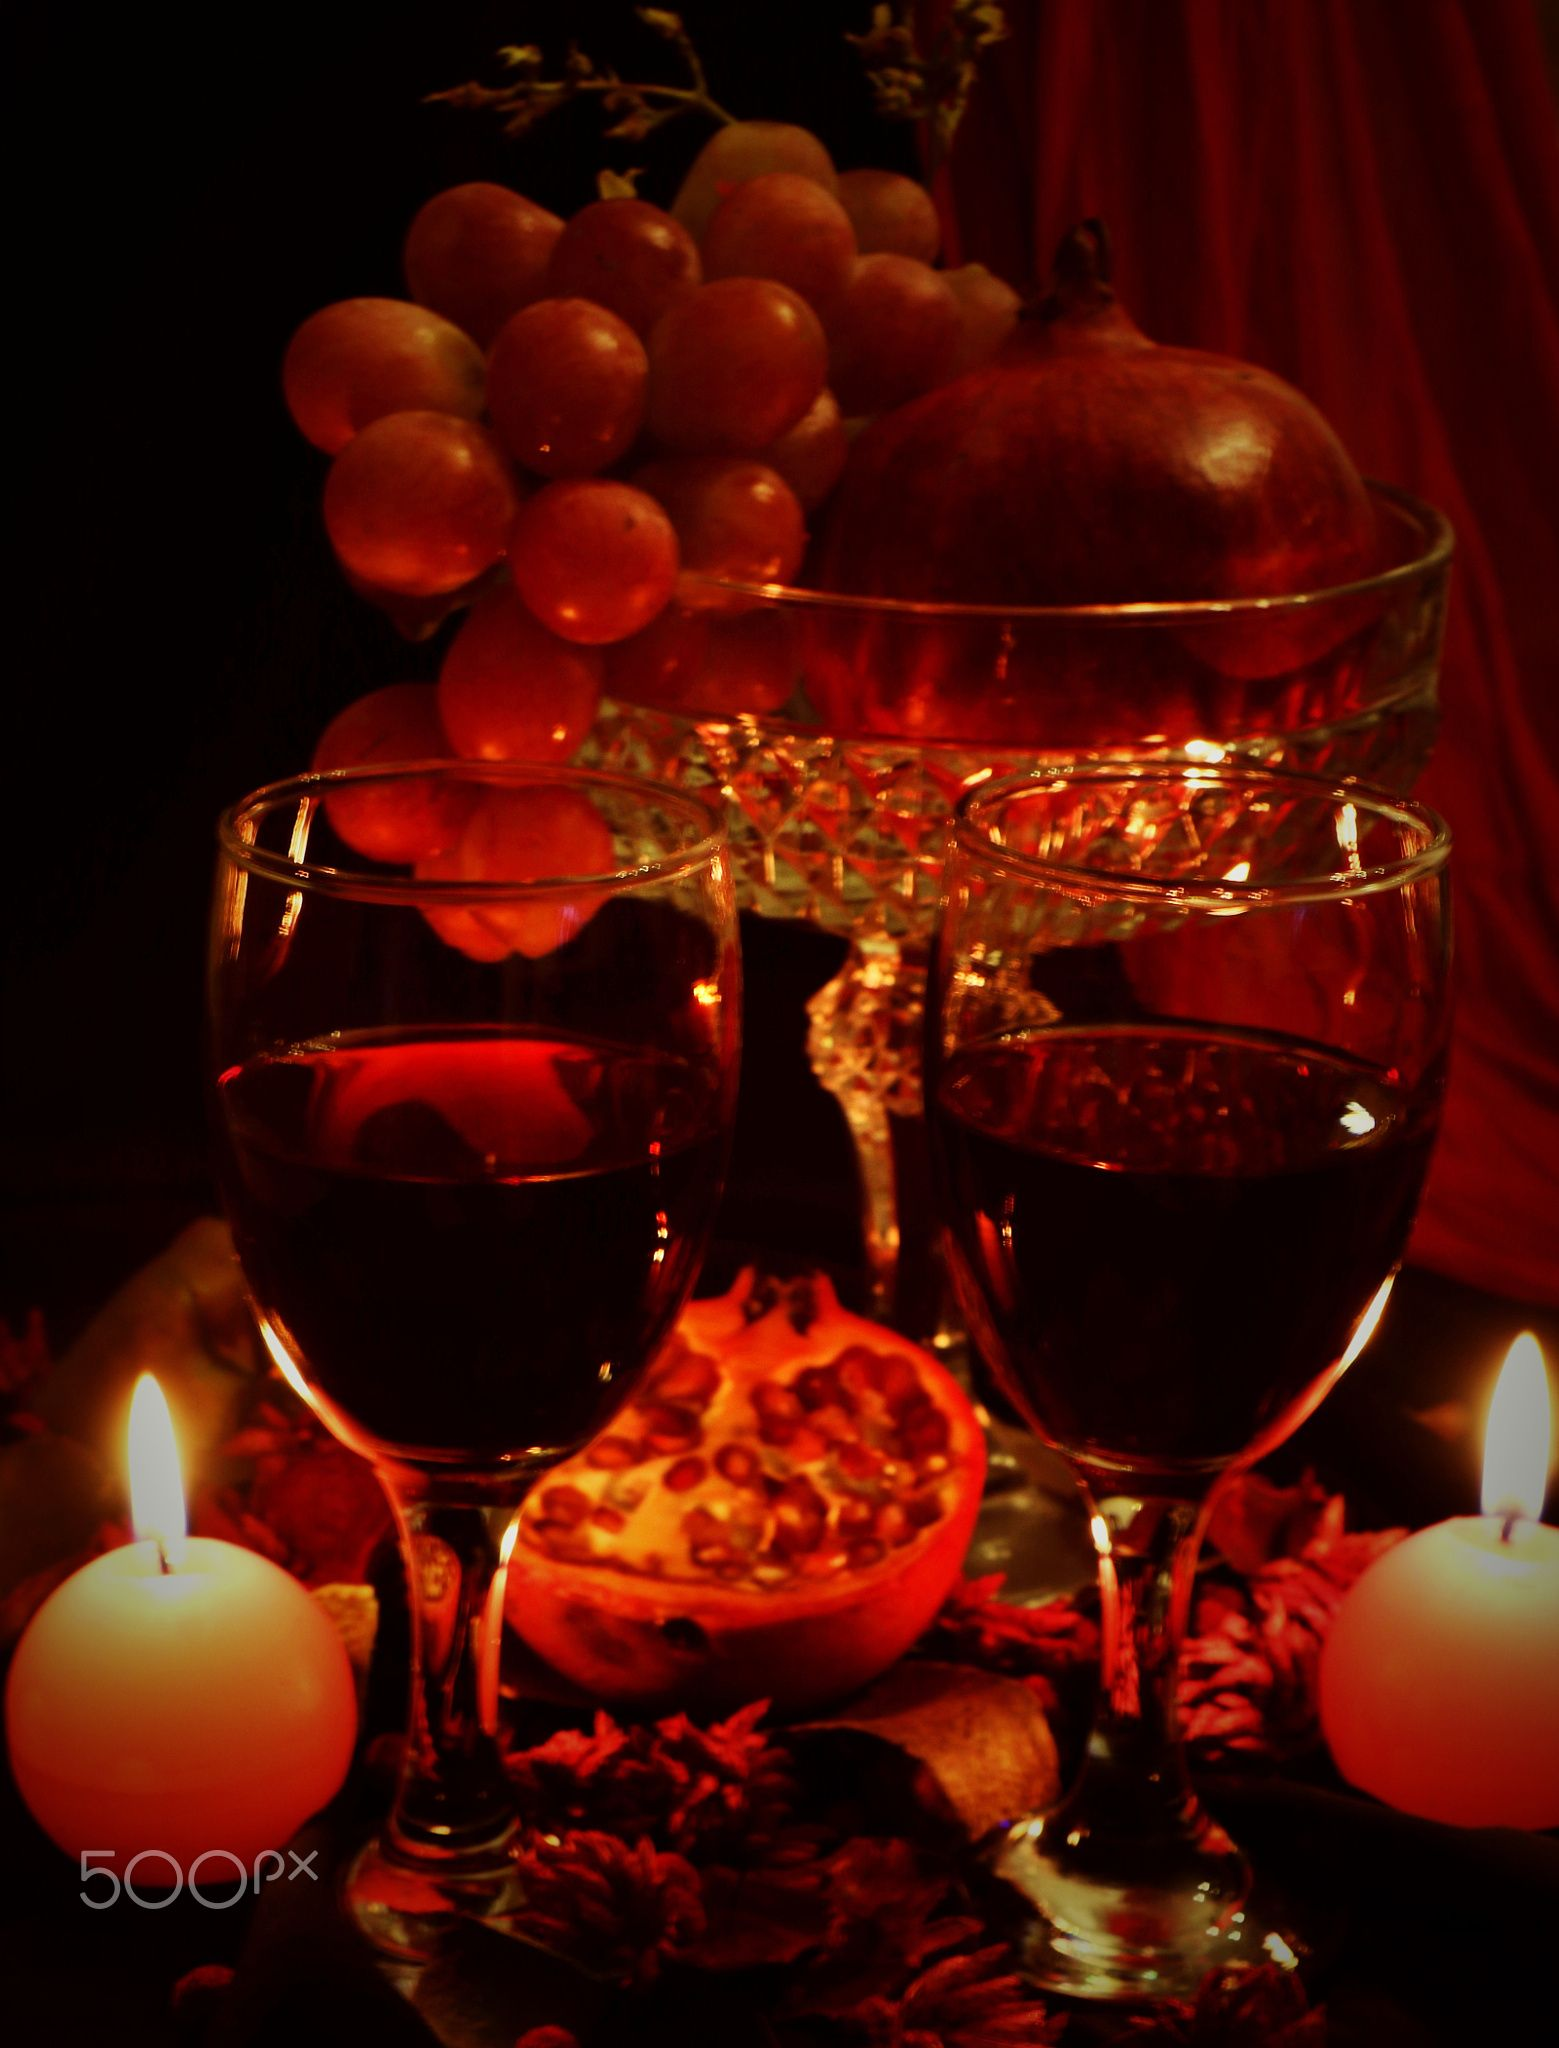 Passion Wine Glasses Wine Recipes Food Photography